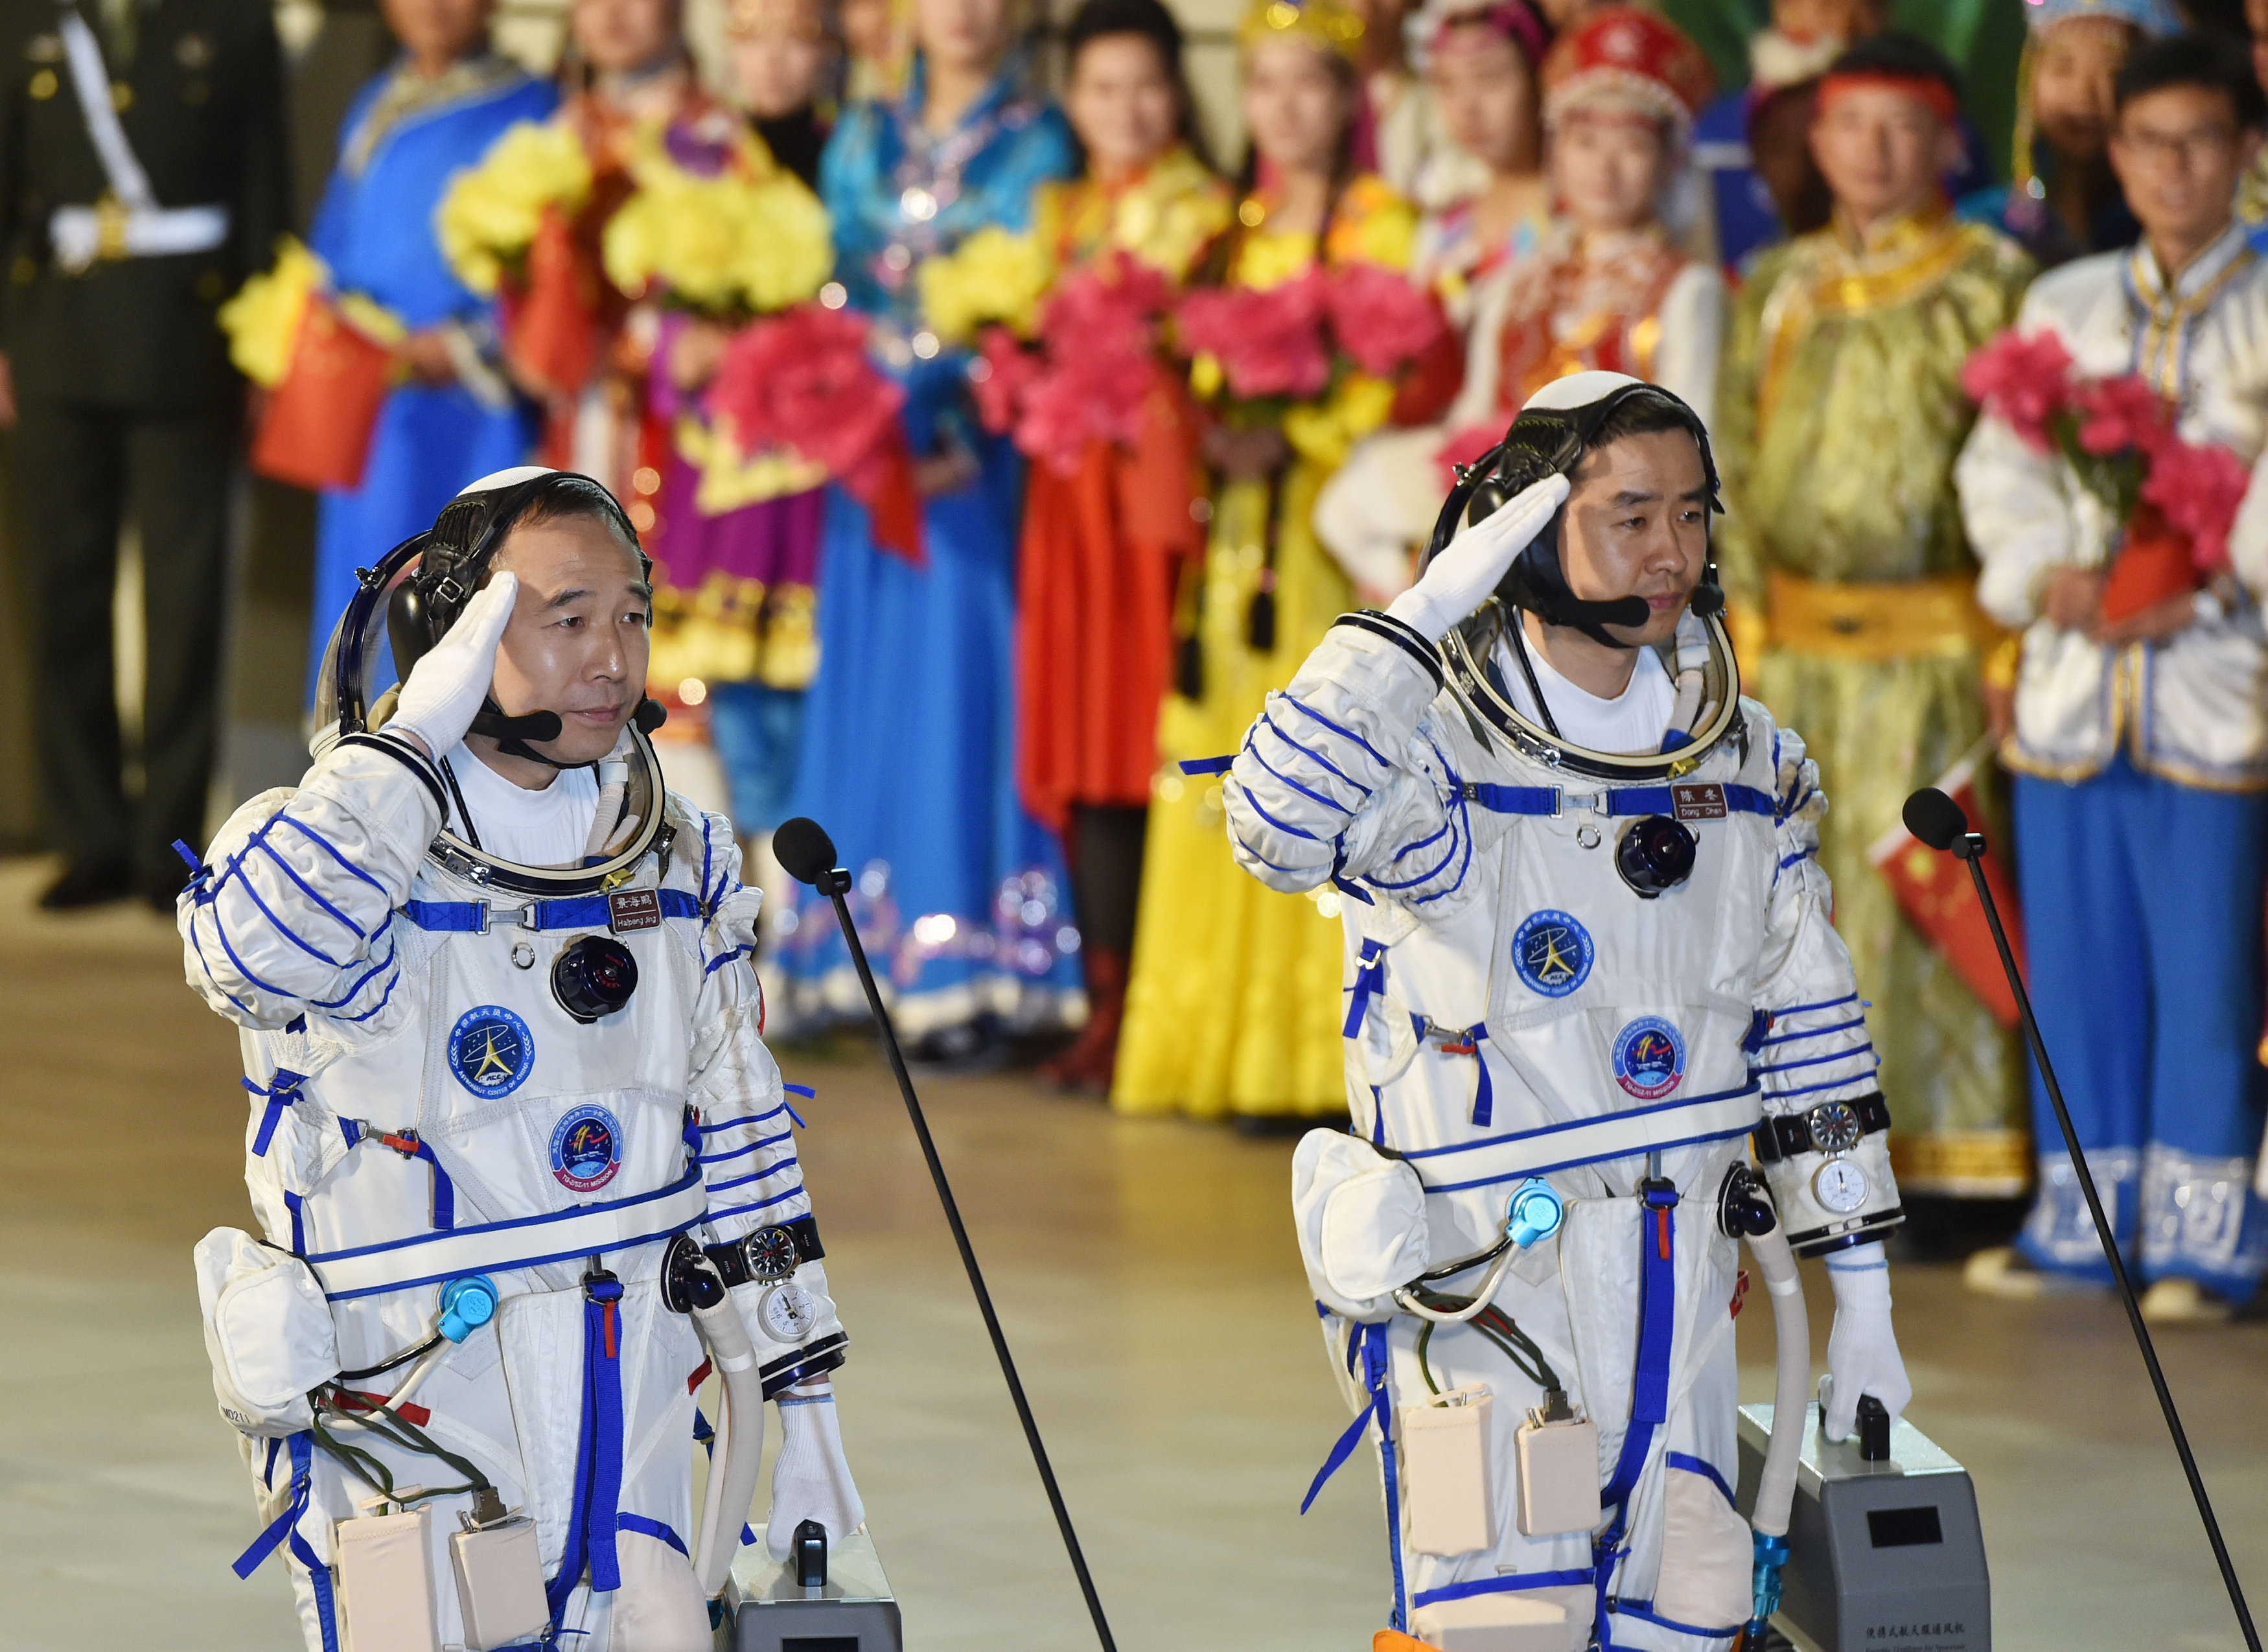 Chinese astronauts Jing Haipeng (L), Chen Dong salute before the launch of Shenzhou-11 manned spacecraft, in Jiuquan, China,